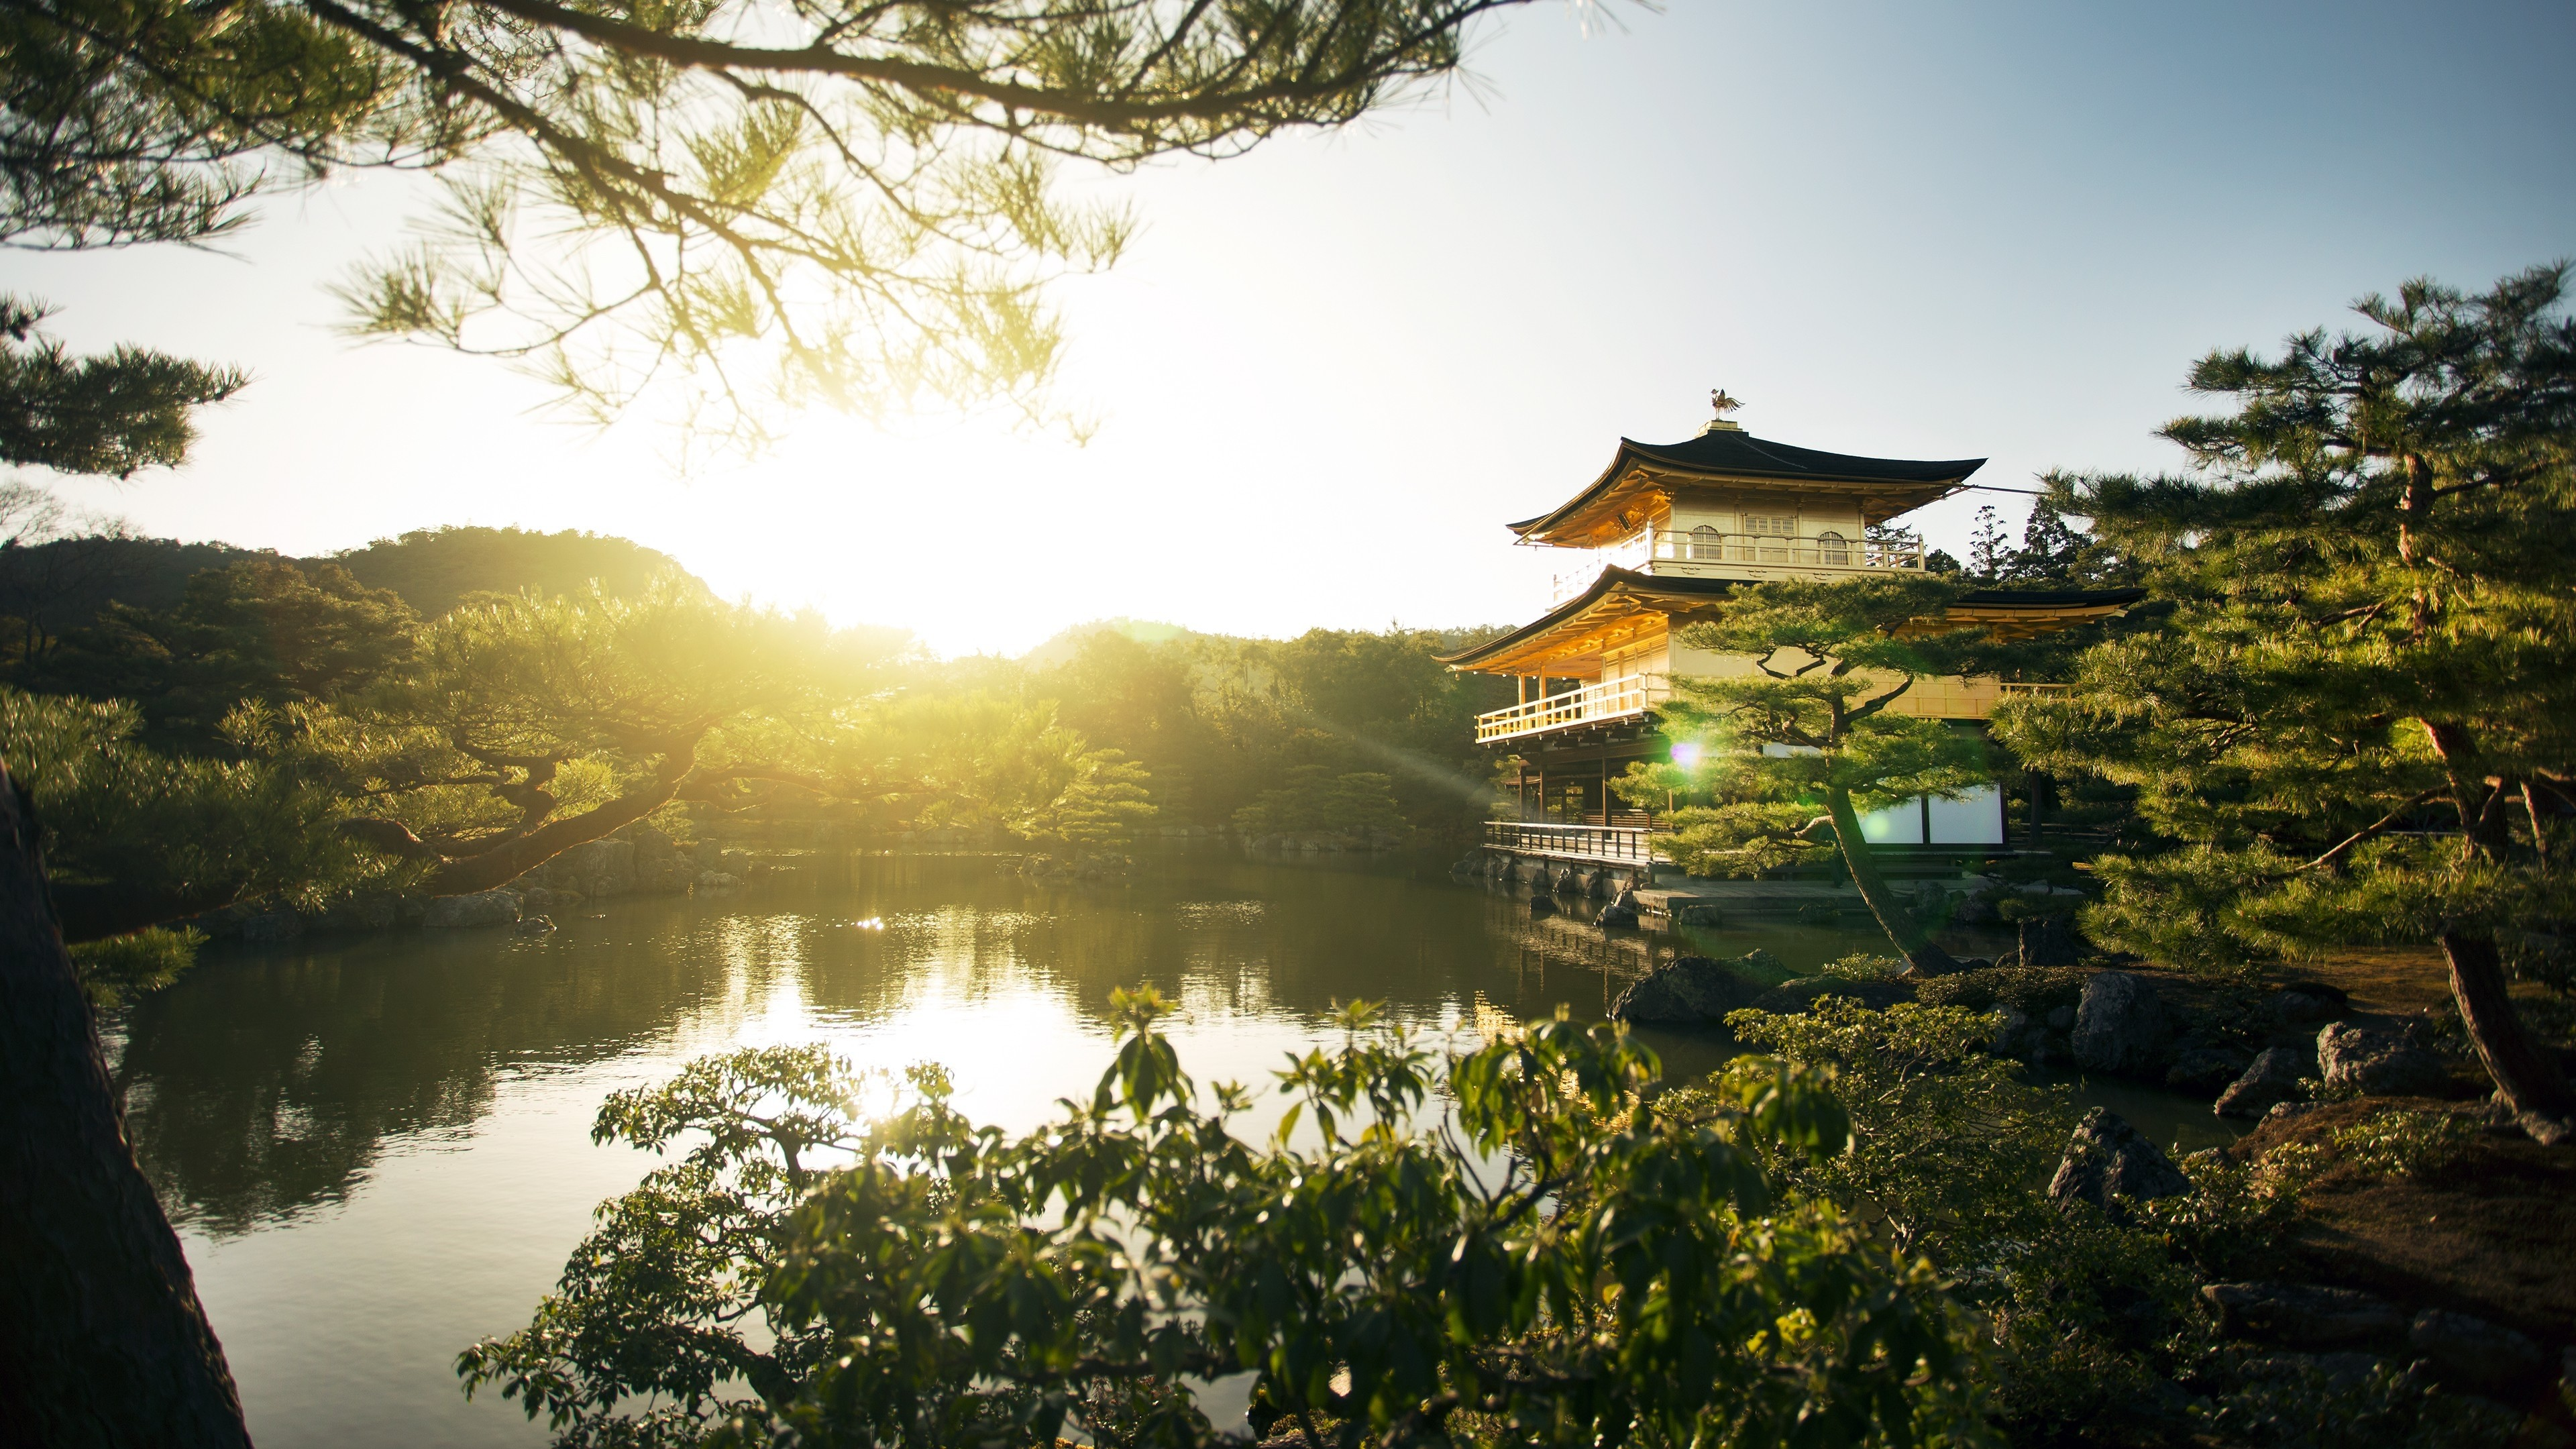 Res: 3840x2160, japan photos windows wallpapers download free amazing cool background  images mac tablet 3840×2160 Wallpaper HD